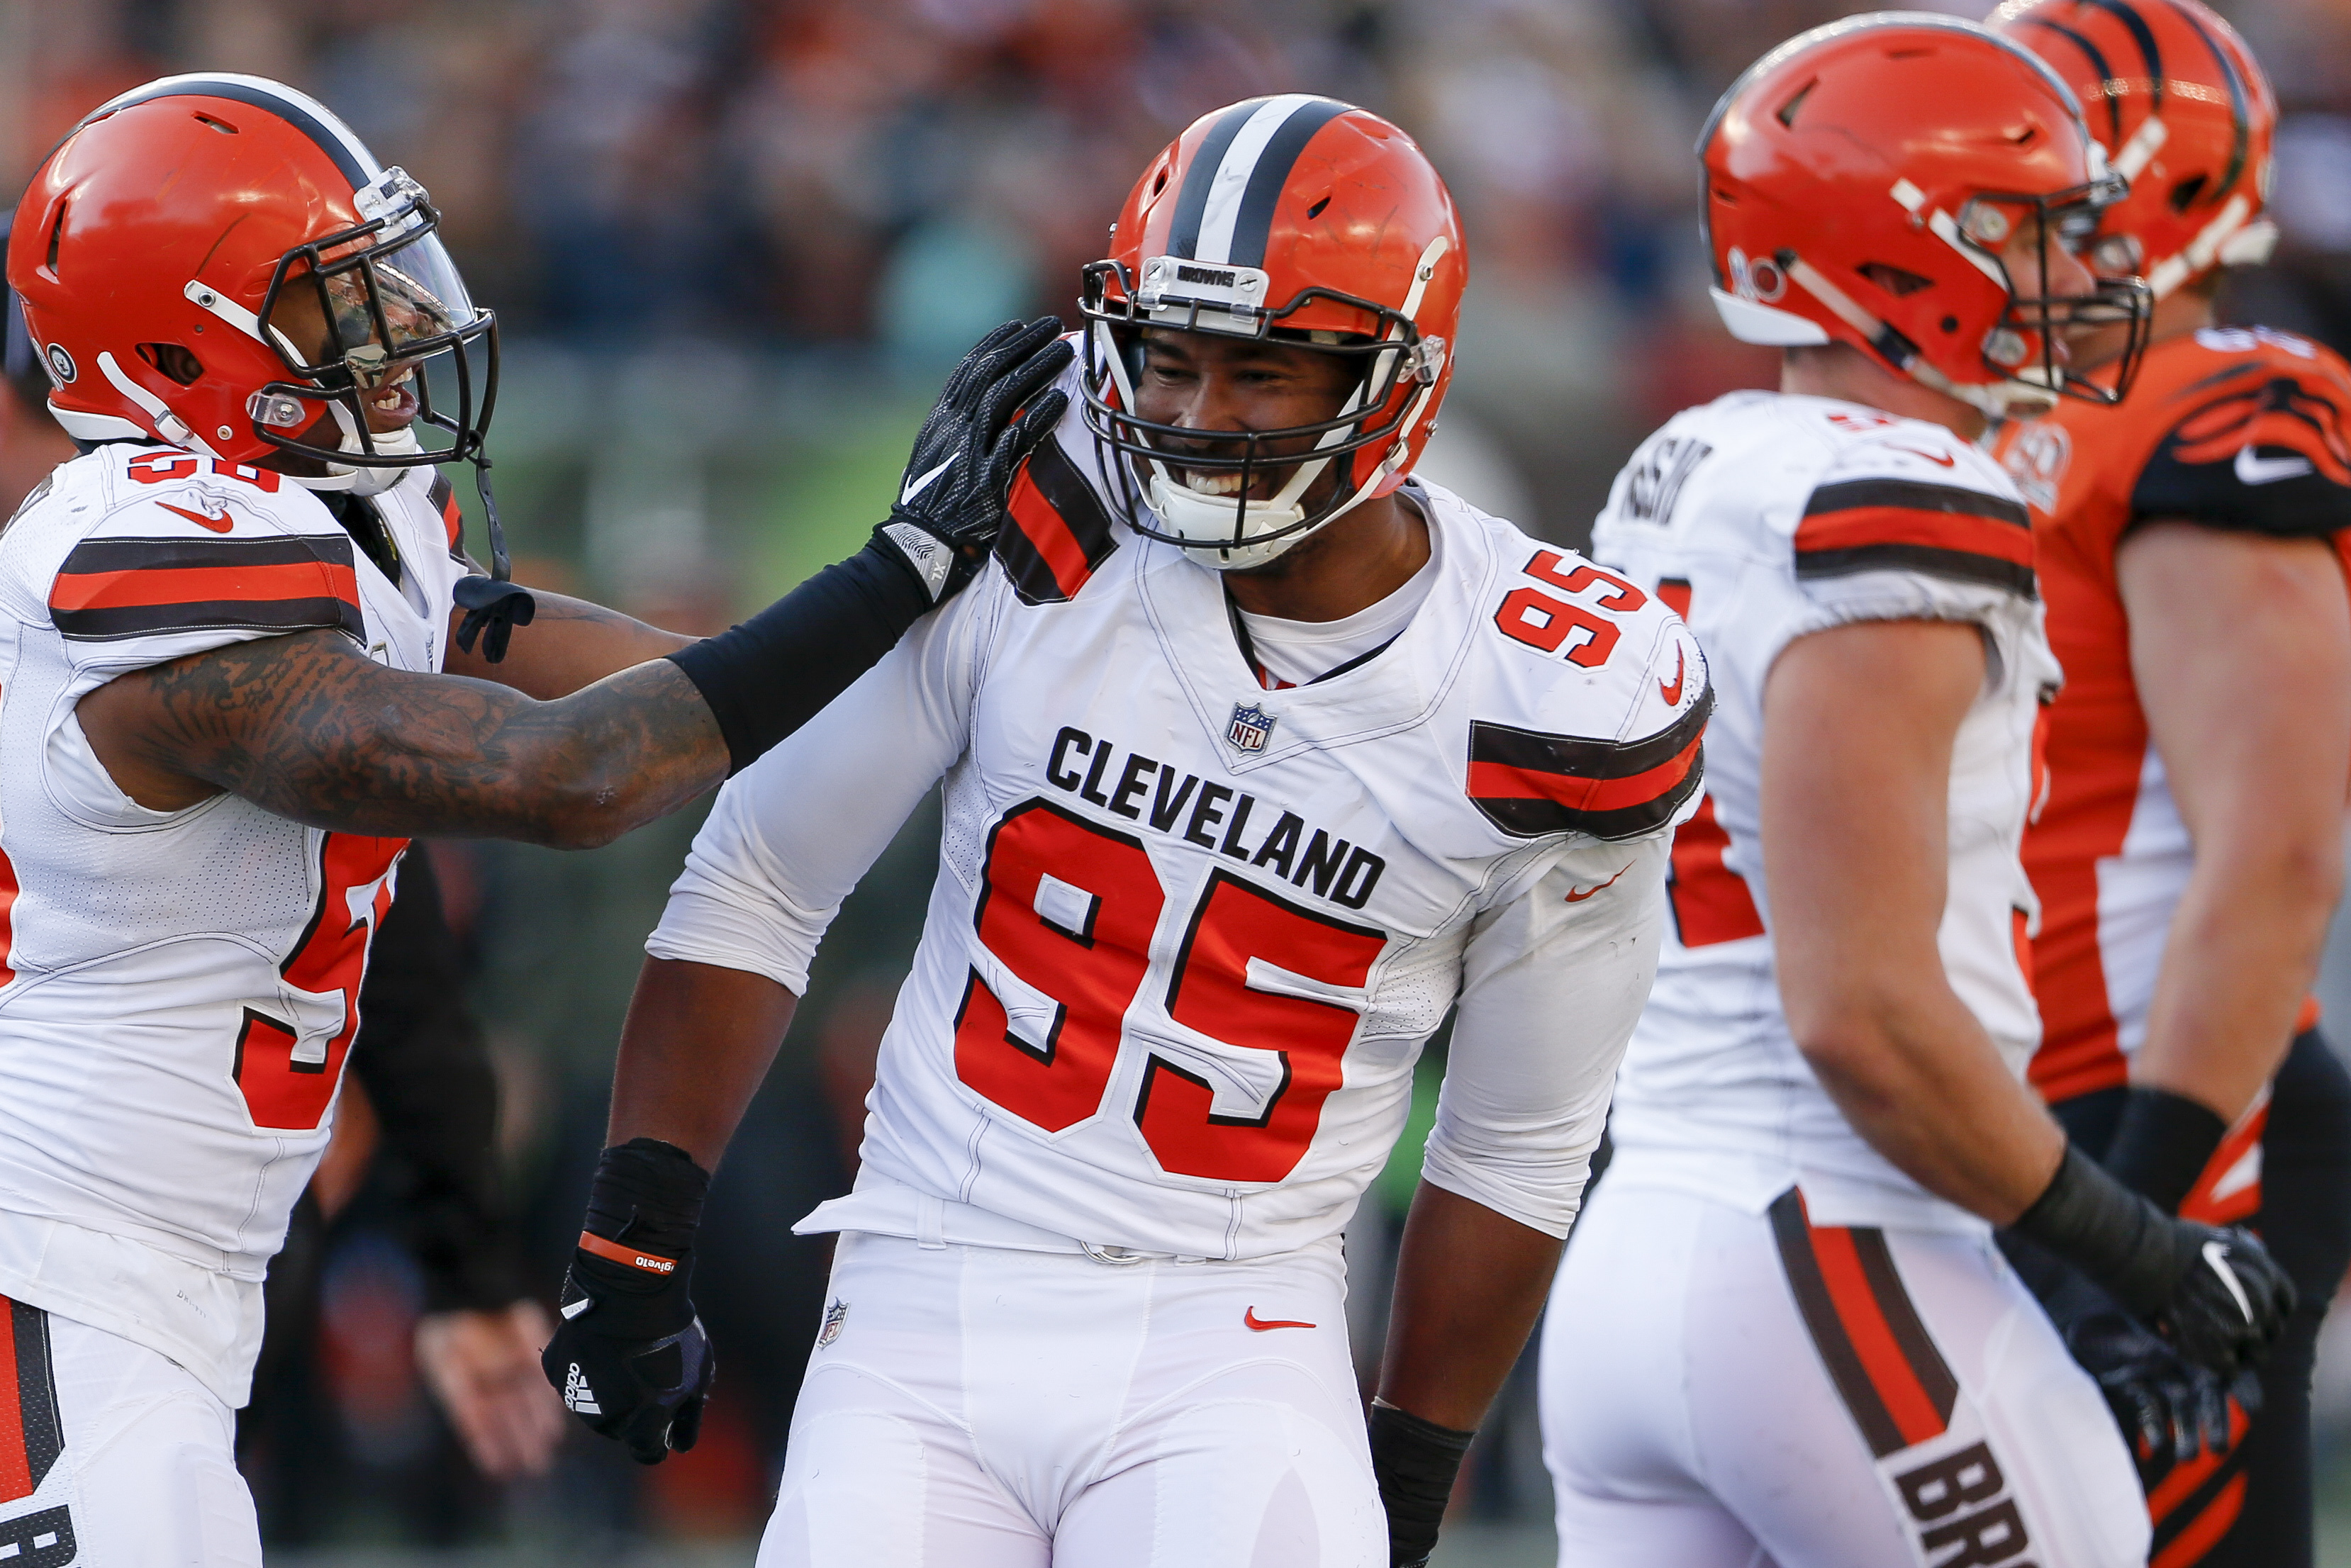 Cleveland Browns defensive end Myles Garrett (95) celebrates after sacking Cincinnati Bengals quarterback Andy Dalton in the first half of an NFL football game, Sunday, Nov. 26, 2017, in Cincinnati. (AP Photo/Gary Landers)